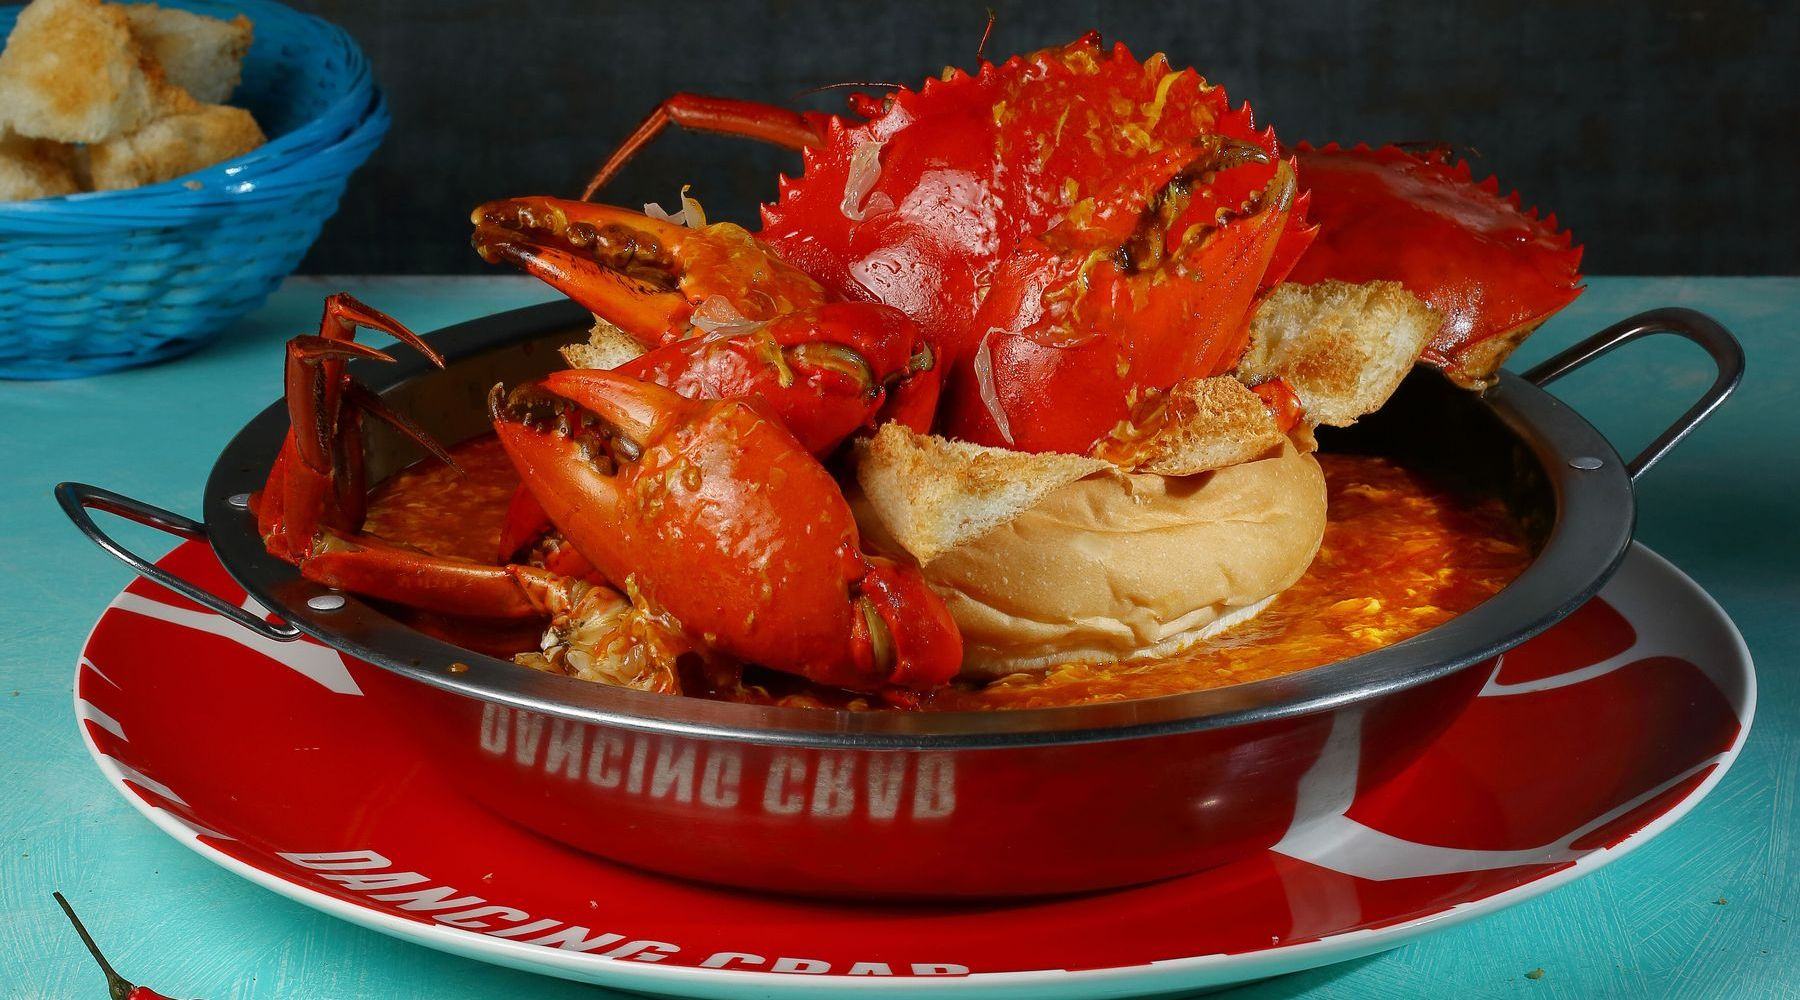 Feast on Seafood like a King at VivoCity Without Burning a Hole in Your Pocket